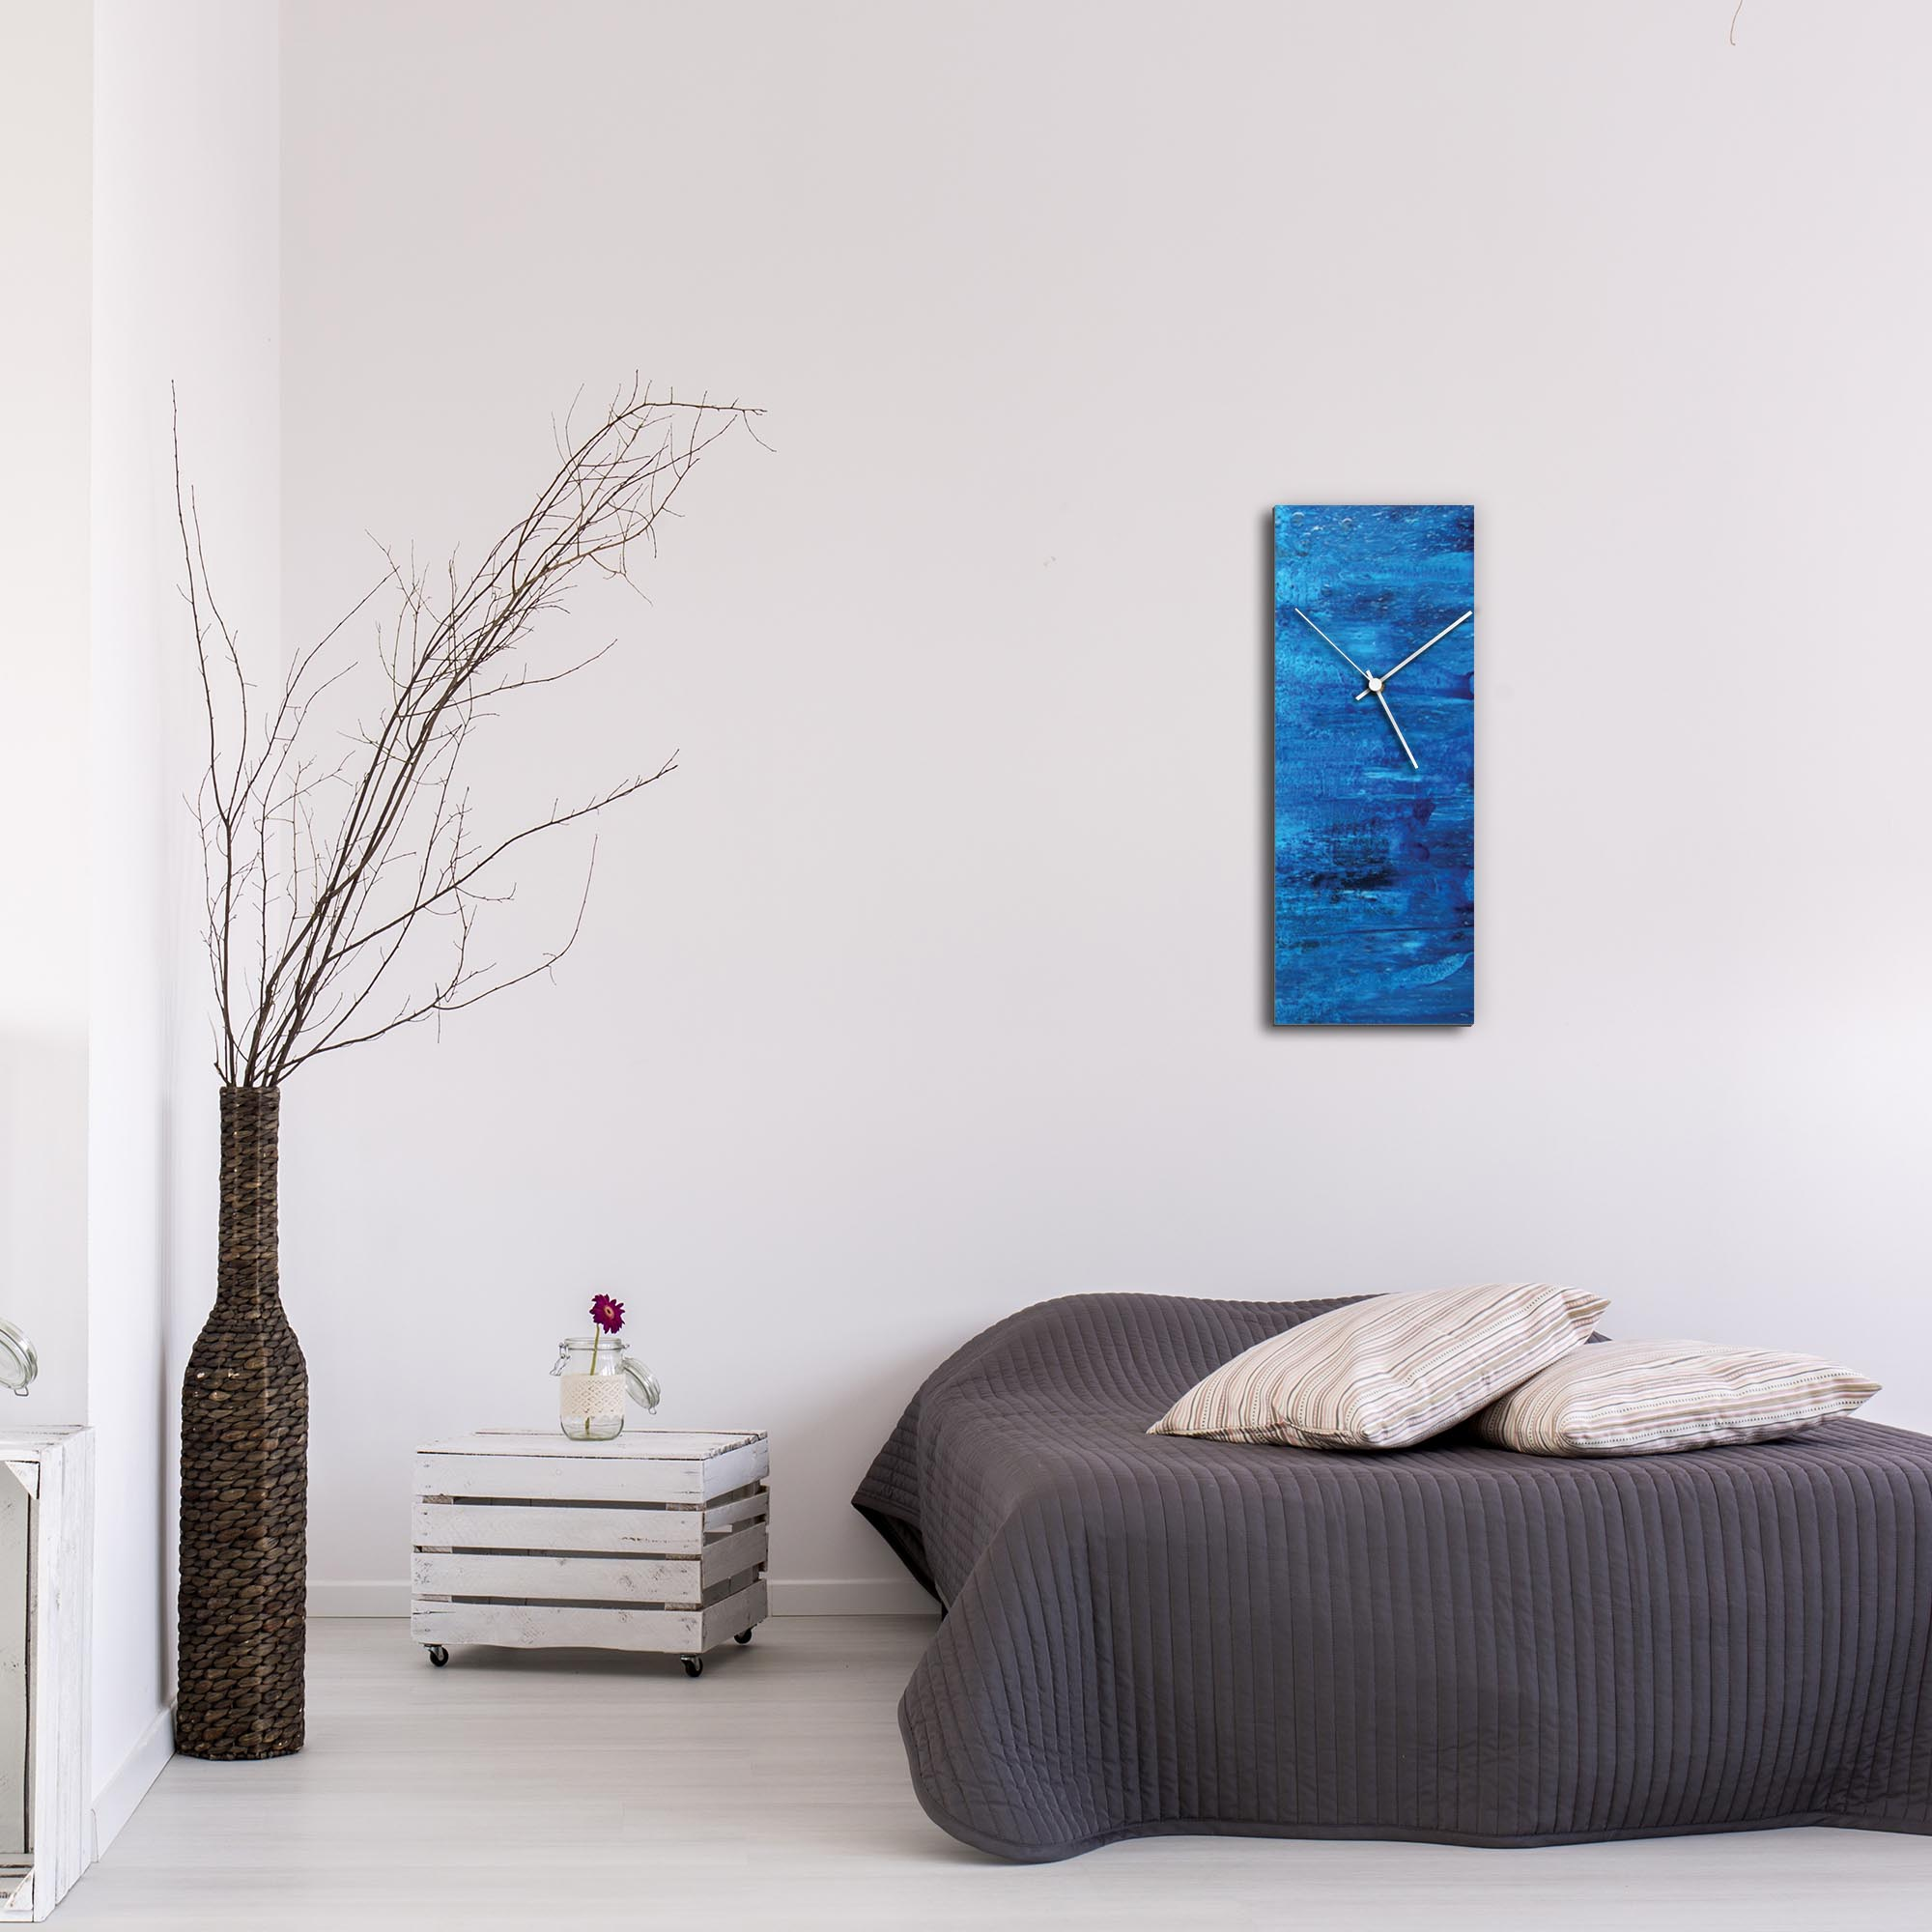 City Blue v2 Clock Large by Mendo Vasilevski - Urban Abstract Home Decor - Lifestyle View